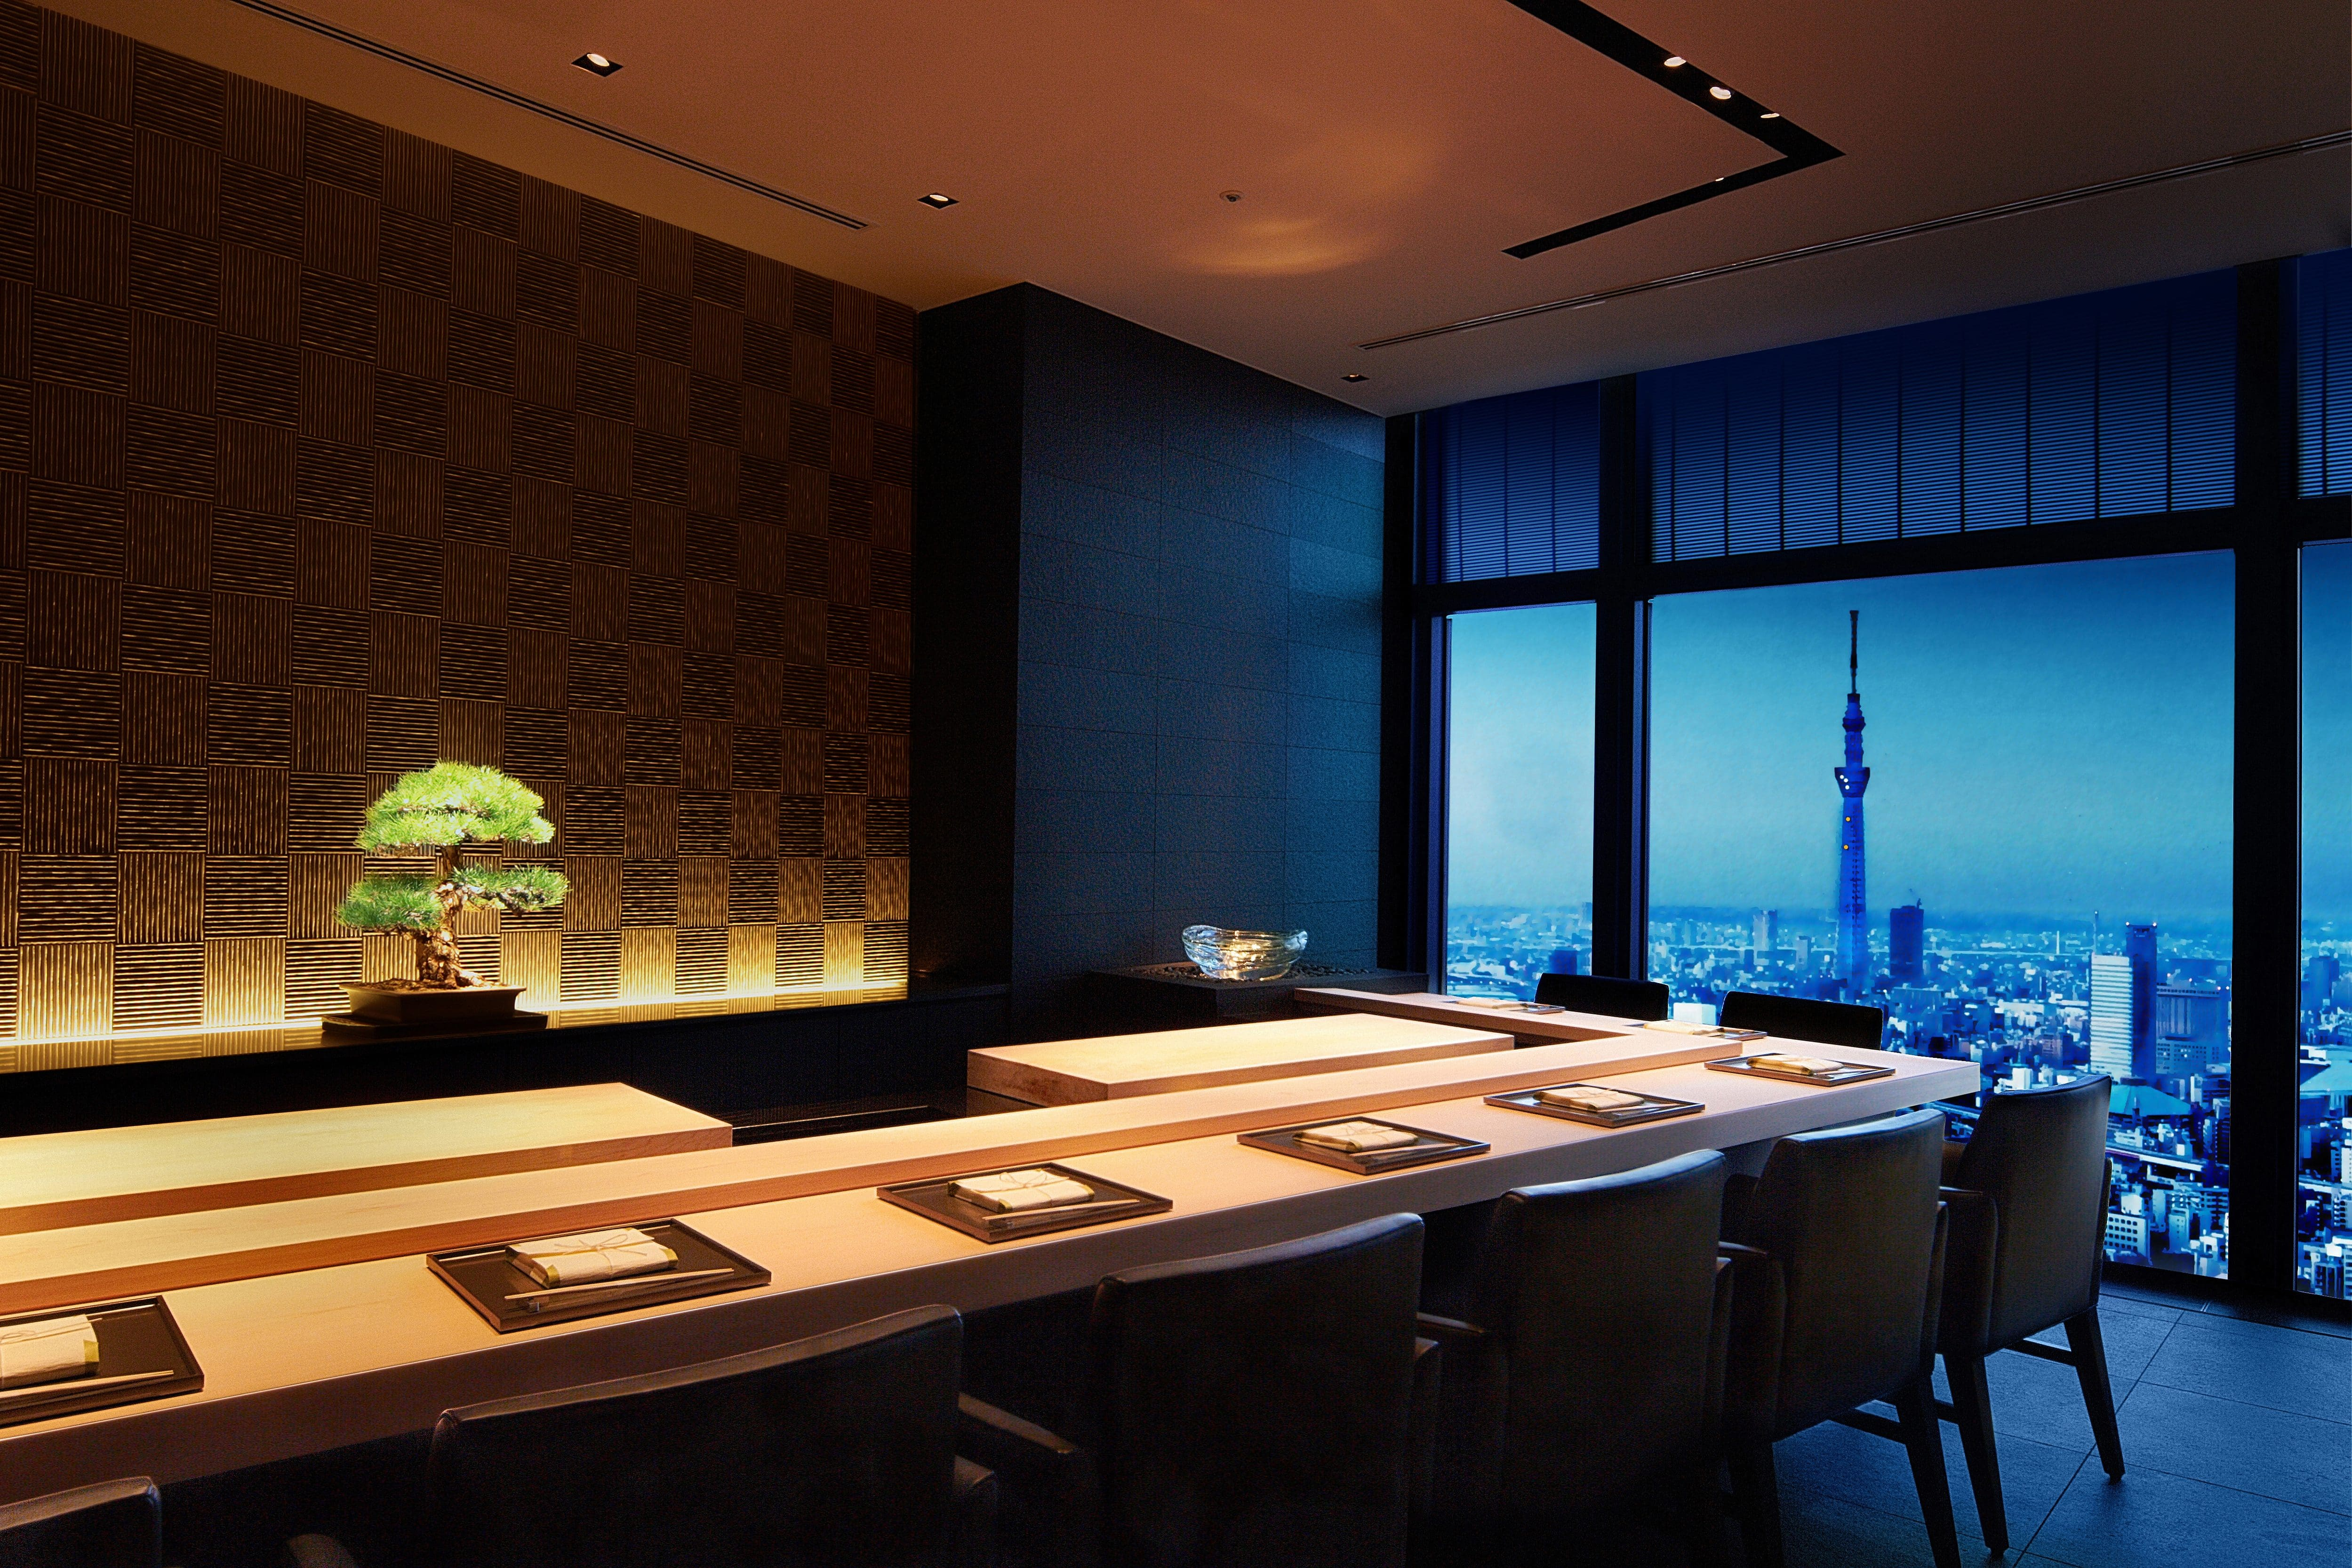 The kitchen counter table laid ready for evening service at Sushi Sora, with views overlooking the Tokyo skyline